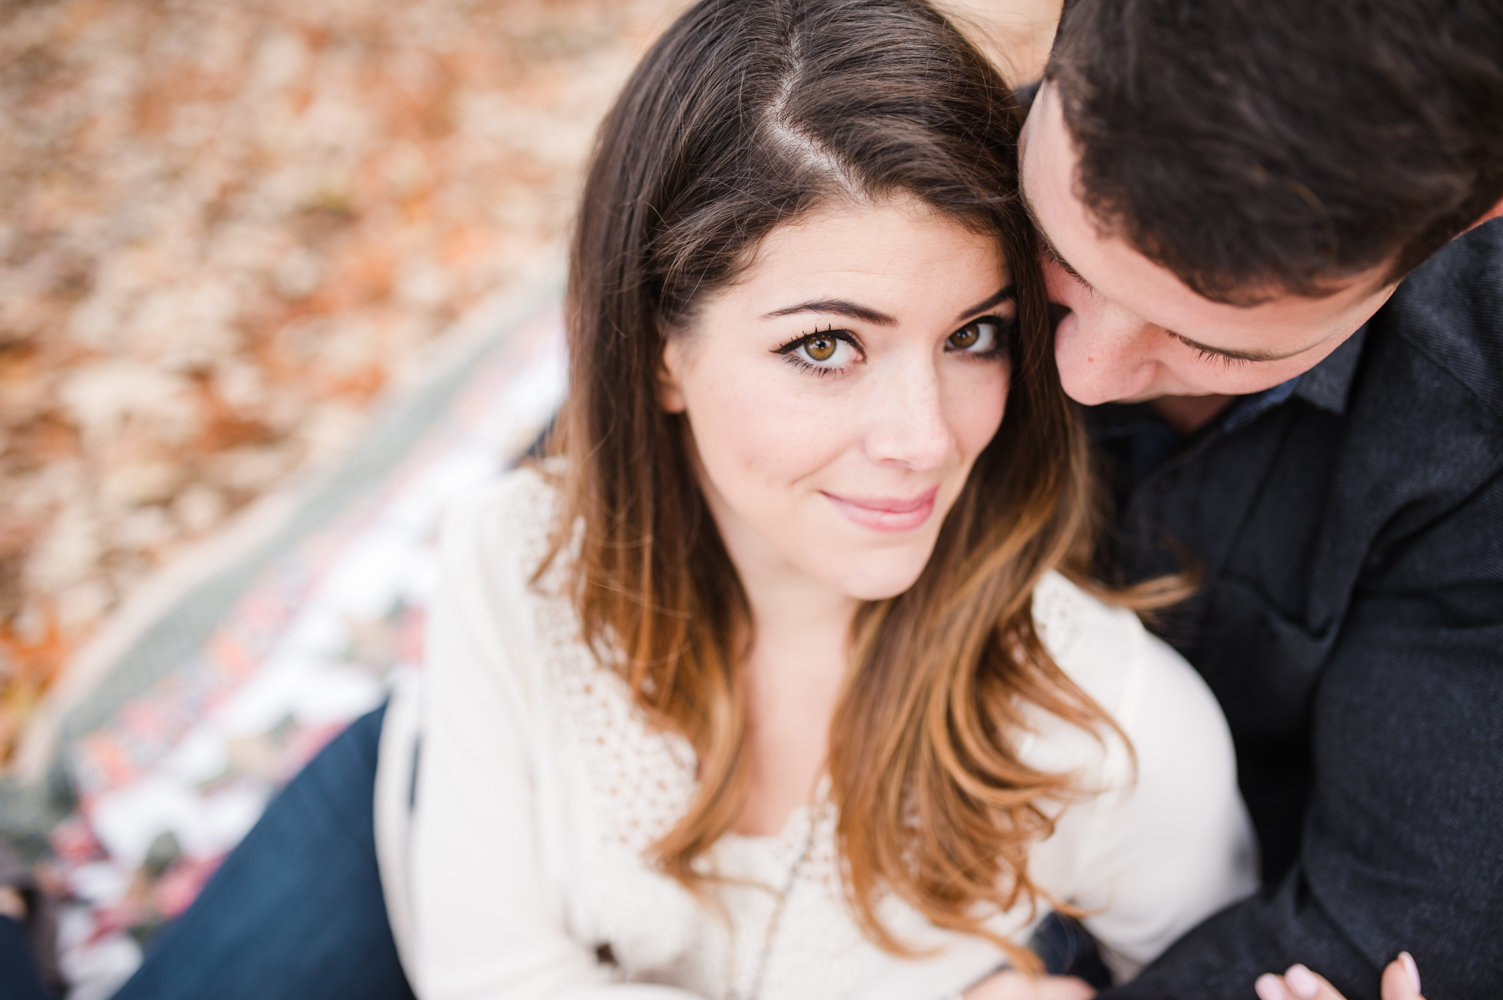 engagement-portraits-christina-forbes-photography-12